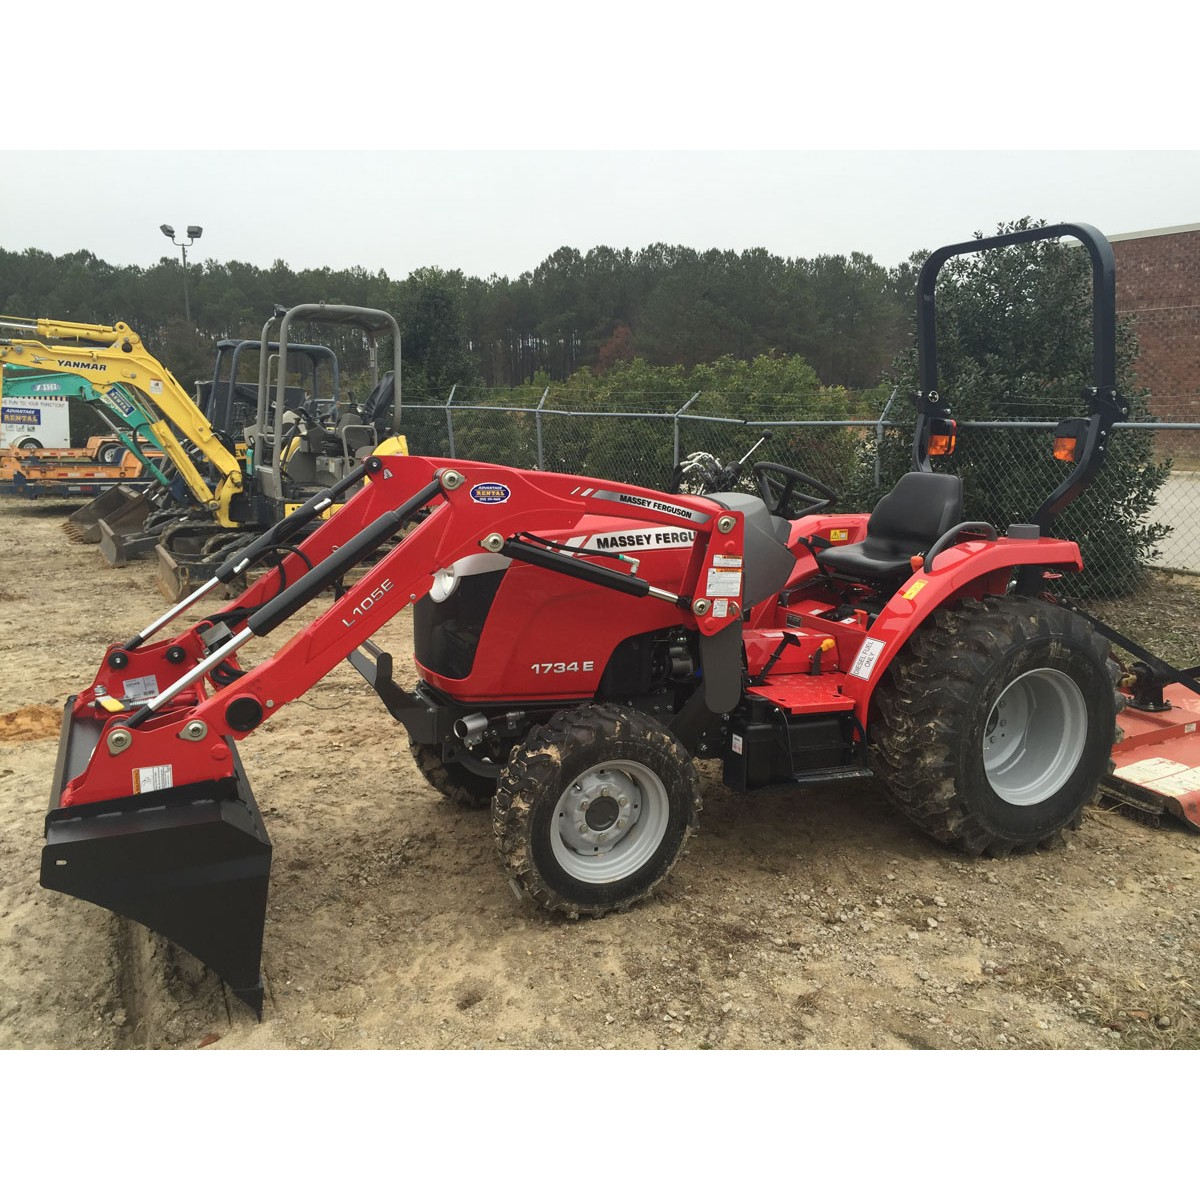 Small Tractors With Loaders : Massey ferguson e compact tractor with loader